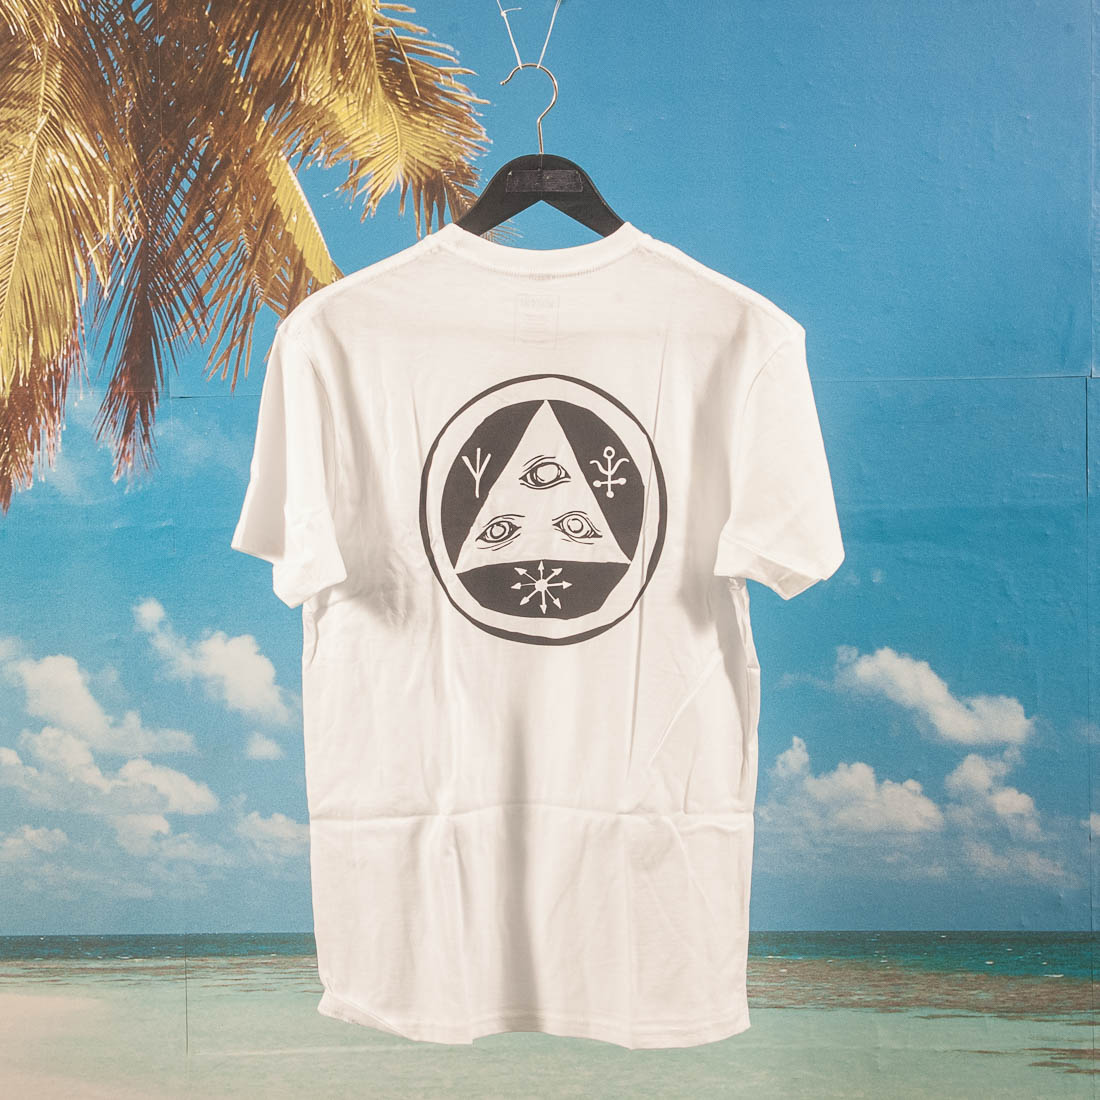 Welcome Skateboards - Talisman T-Shirt - White